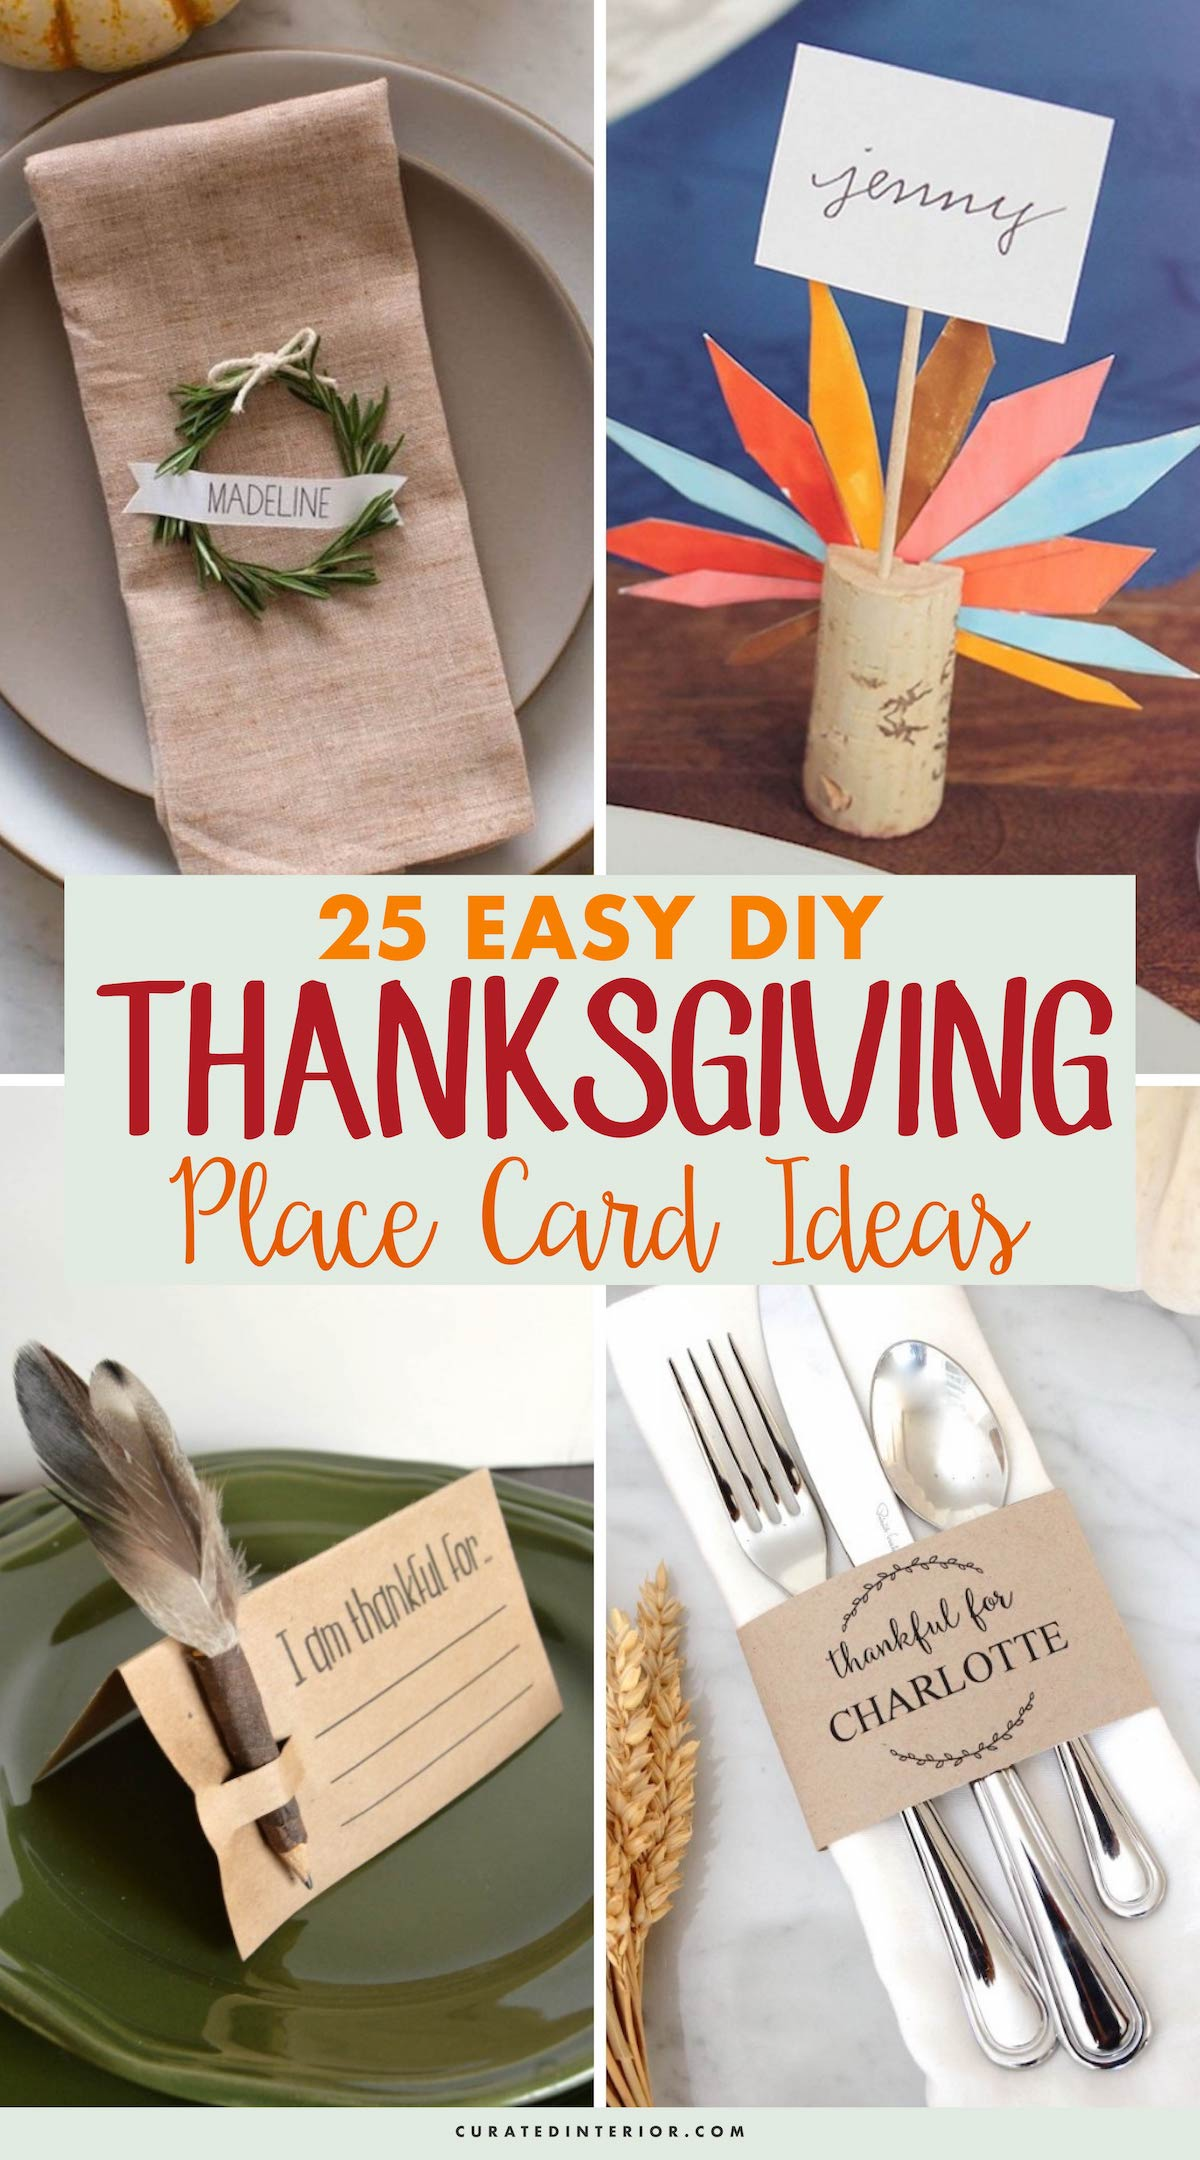 25 Easy DIY Thanksgiving Place Card Ideas #Thanksgiving #ThanksgivingDecor #ThanksgivingTable #ThanksgivingTableDecor